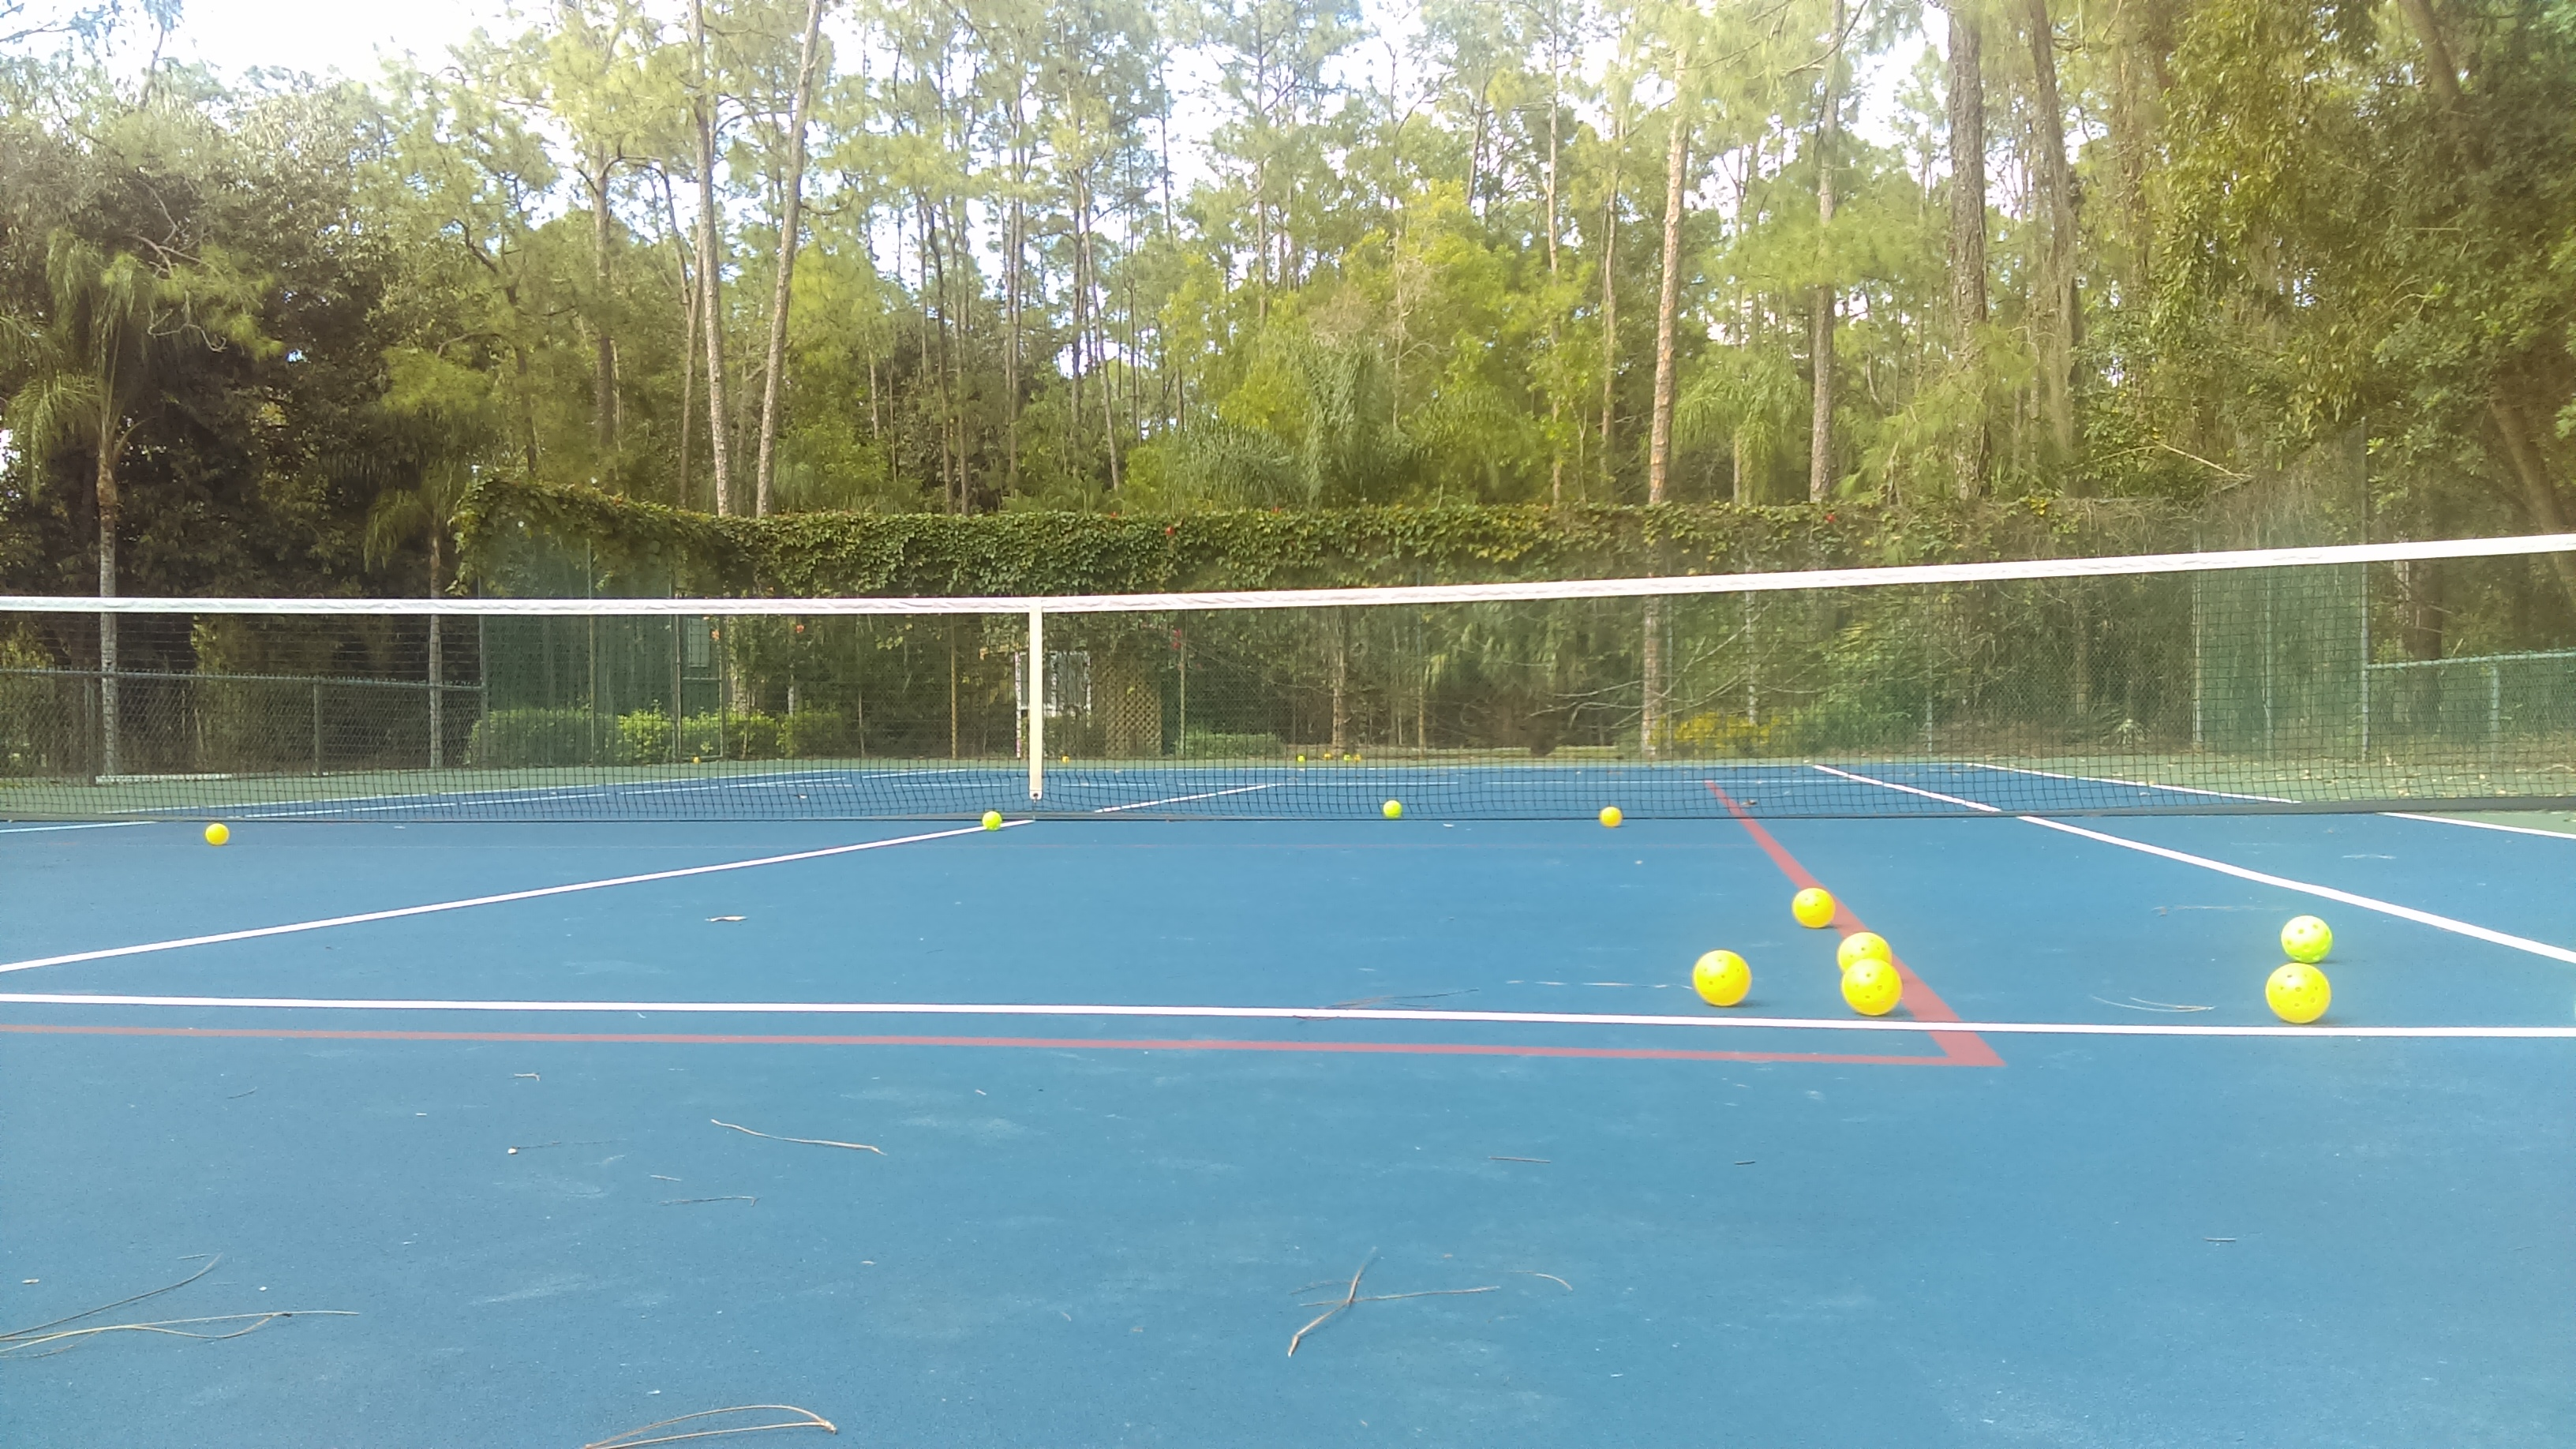 Pickleball – No Pickles Needed